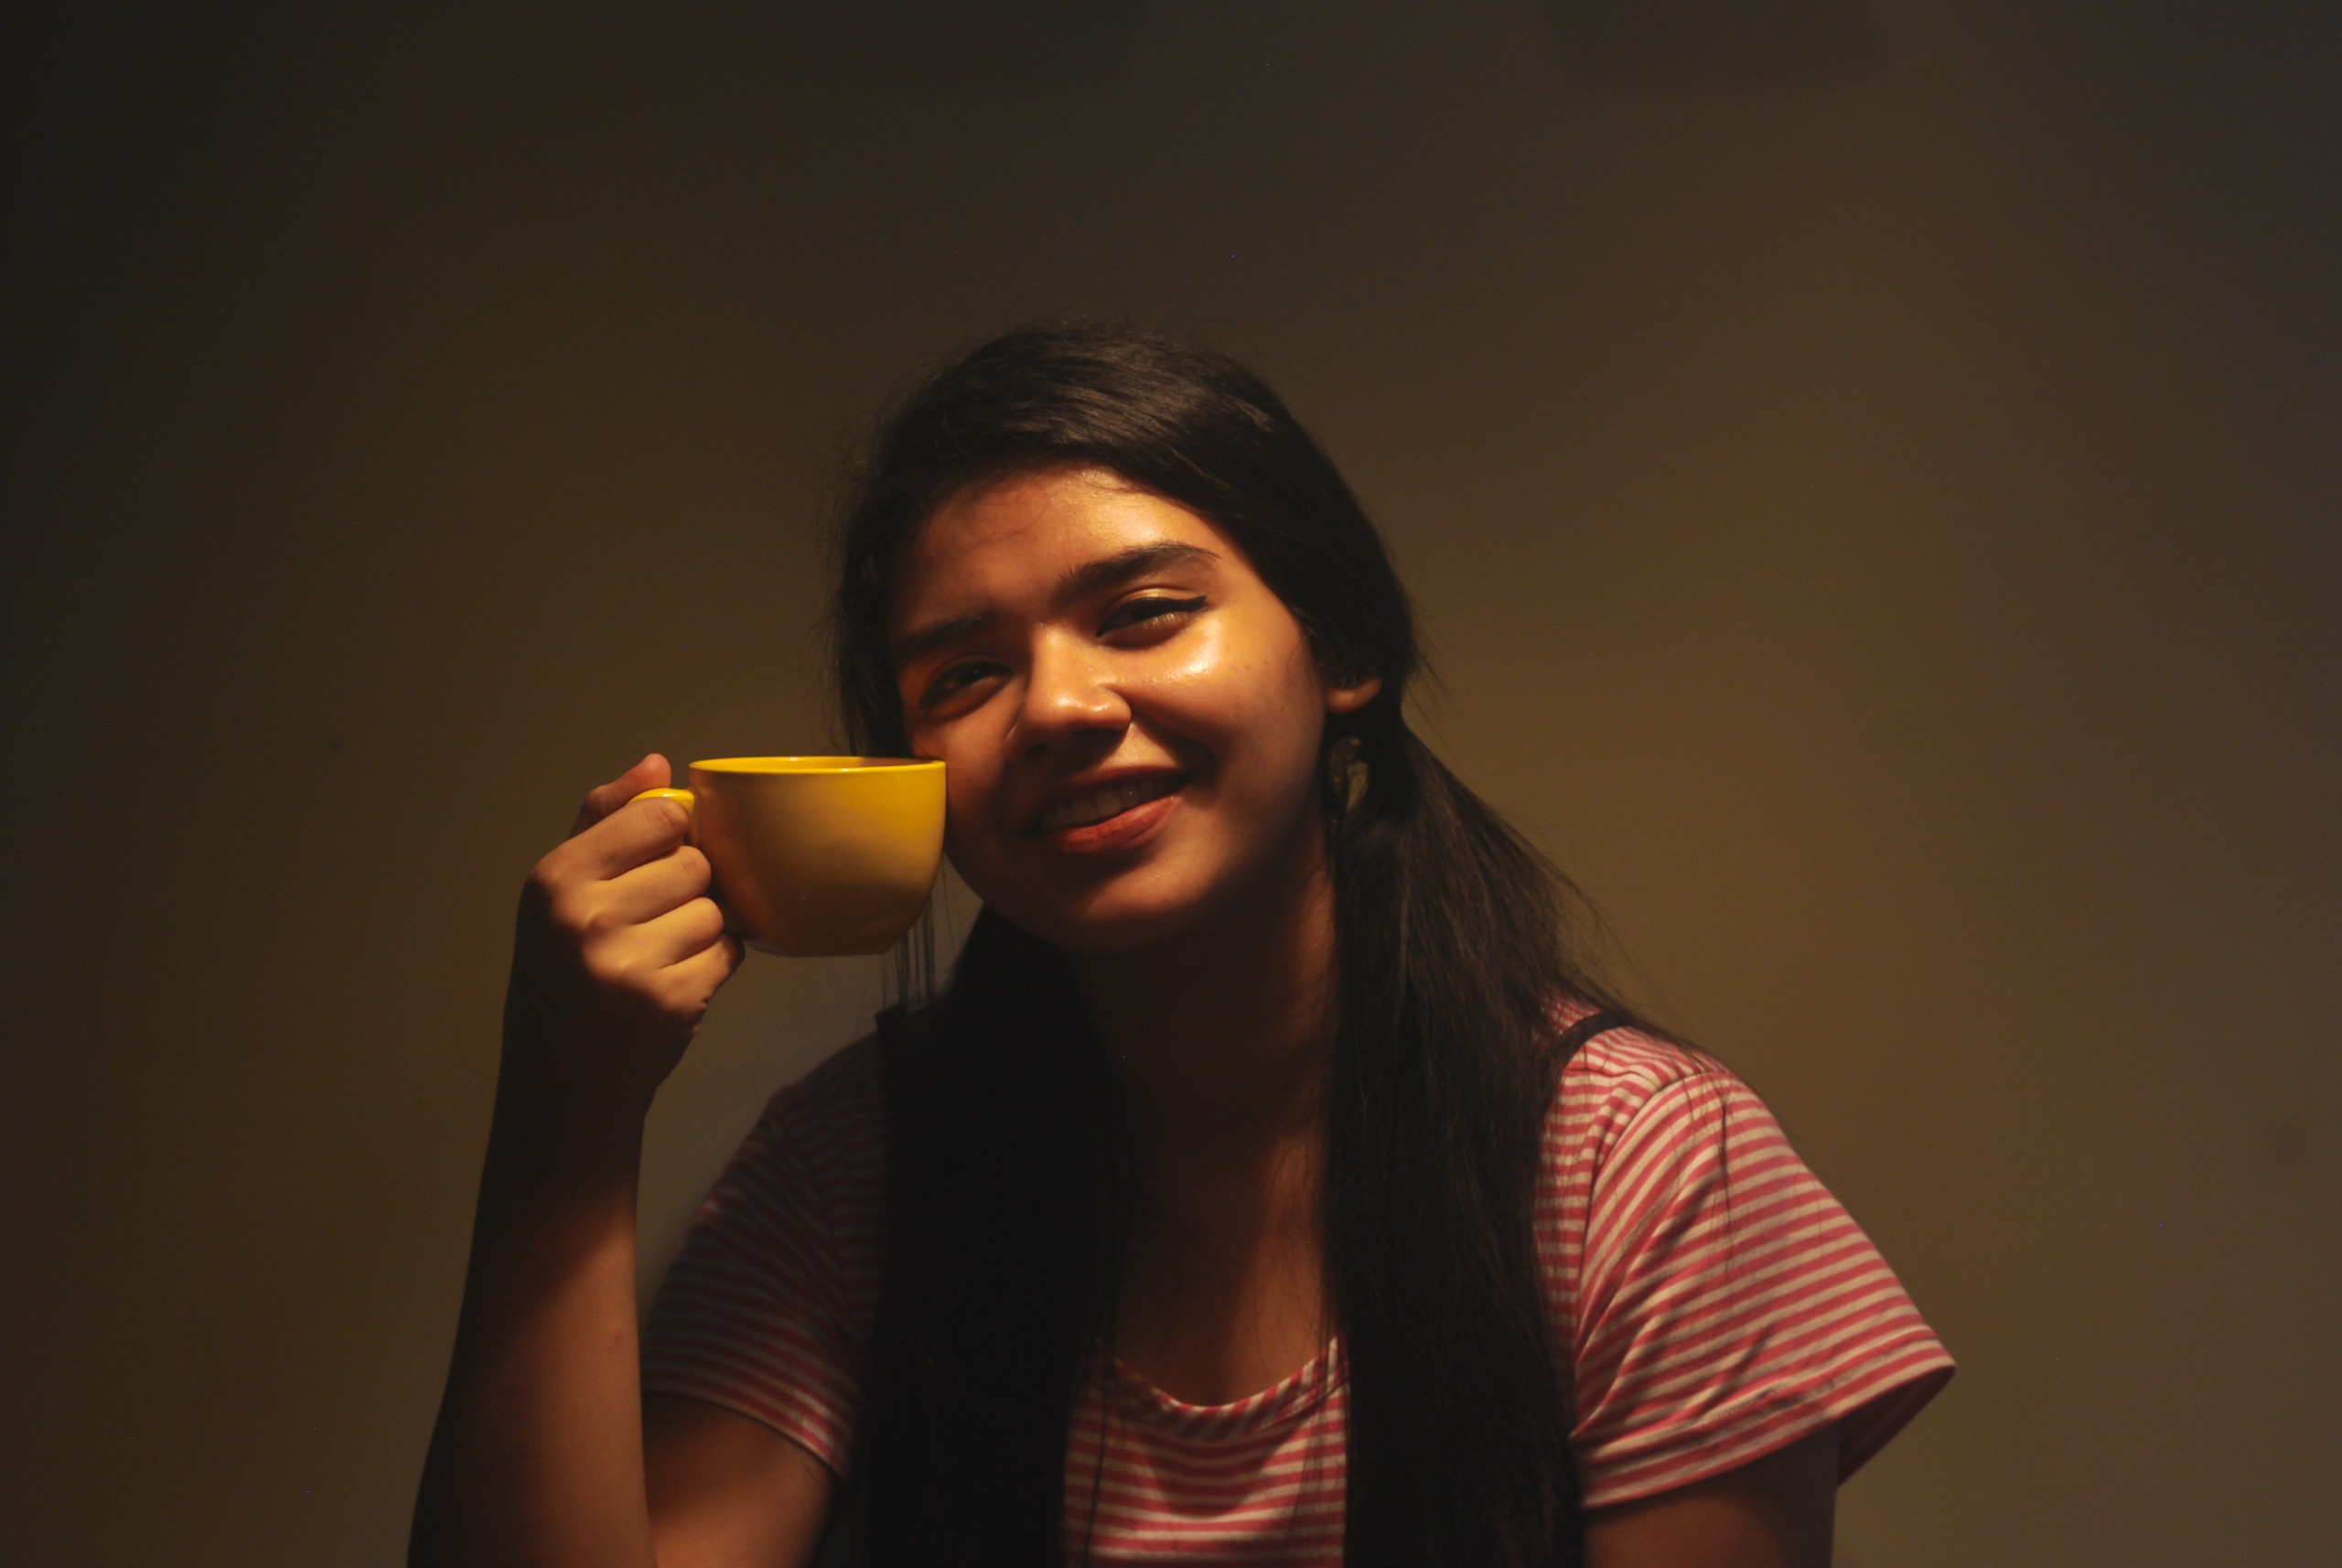 Woman happily holding a cup